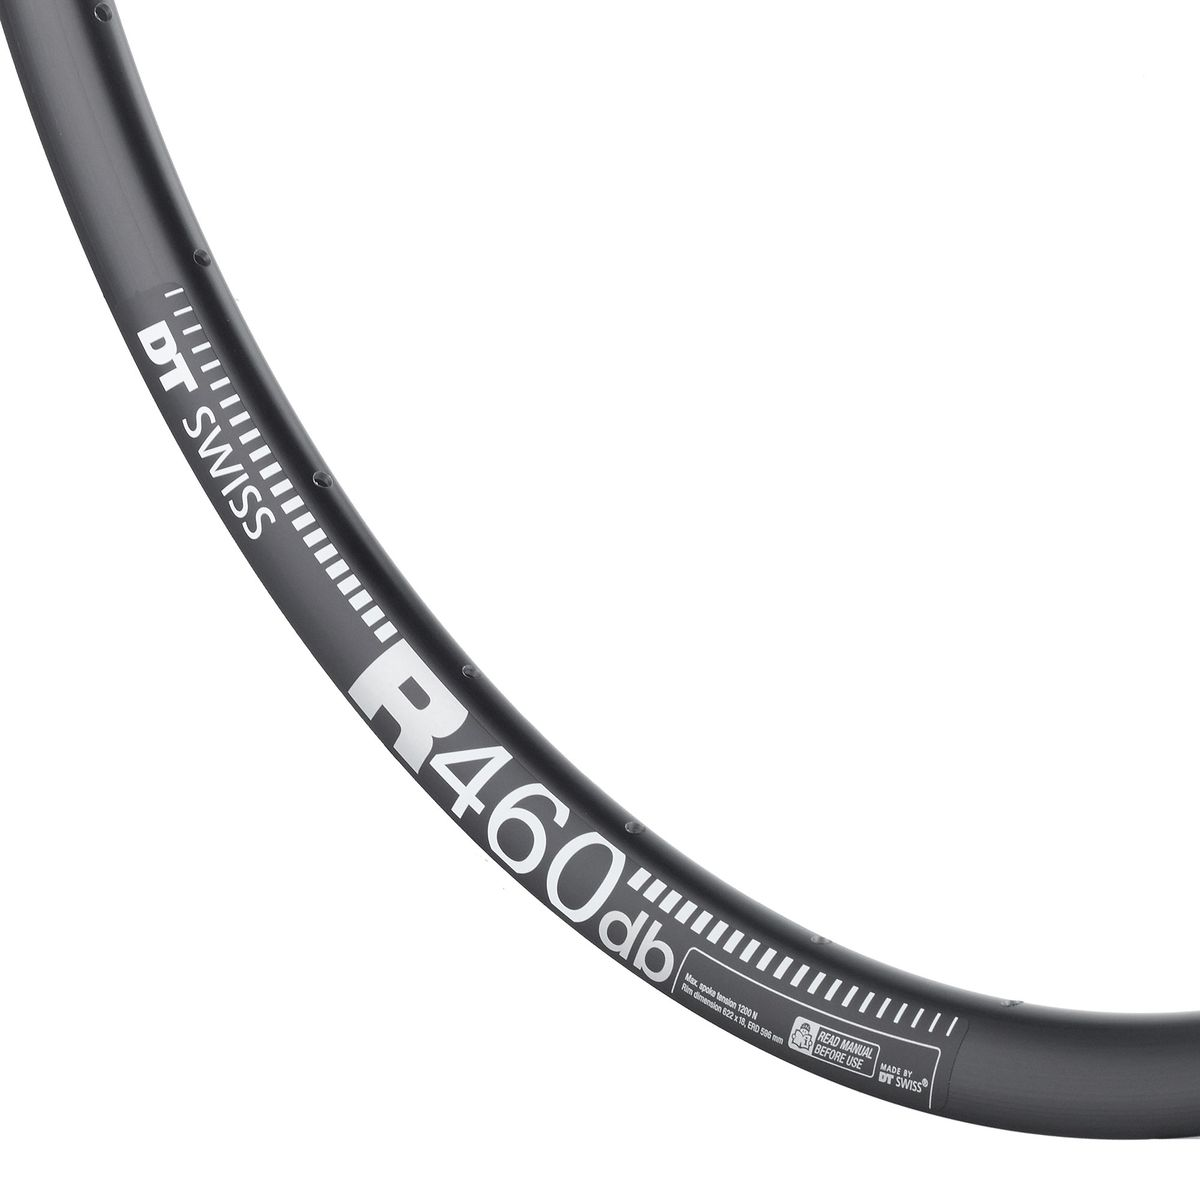 R-460 db DISC road bike rim